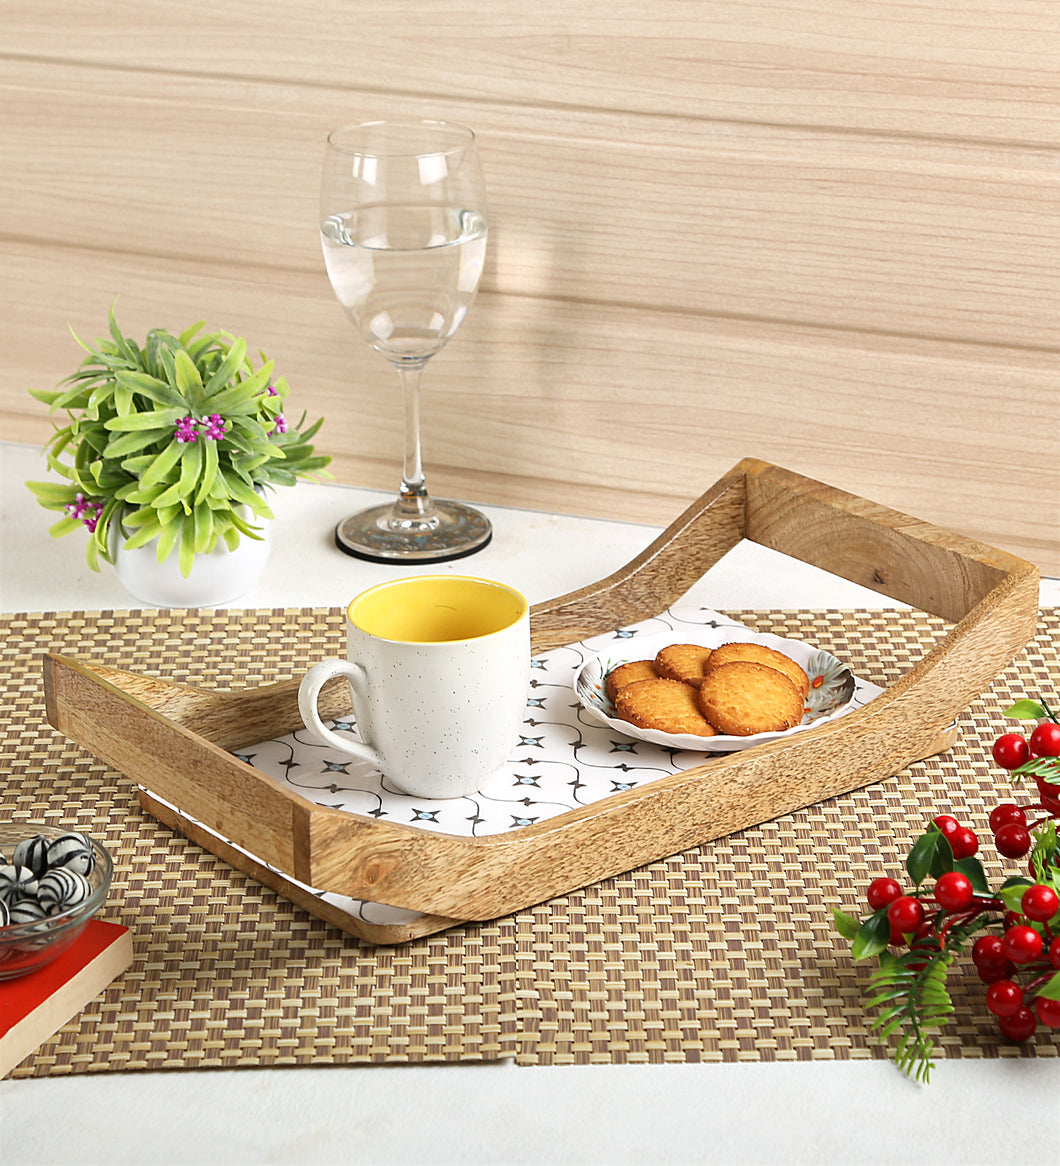 Crayton Star Rectangular Mango Wood Large Serving Tray